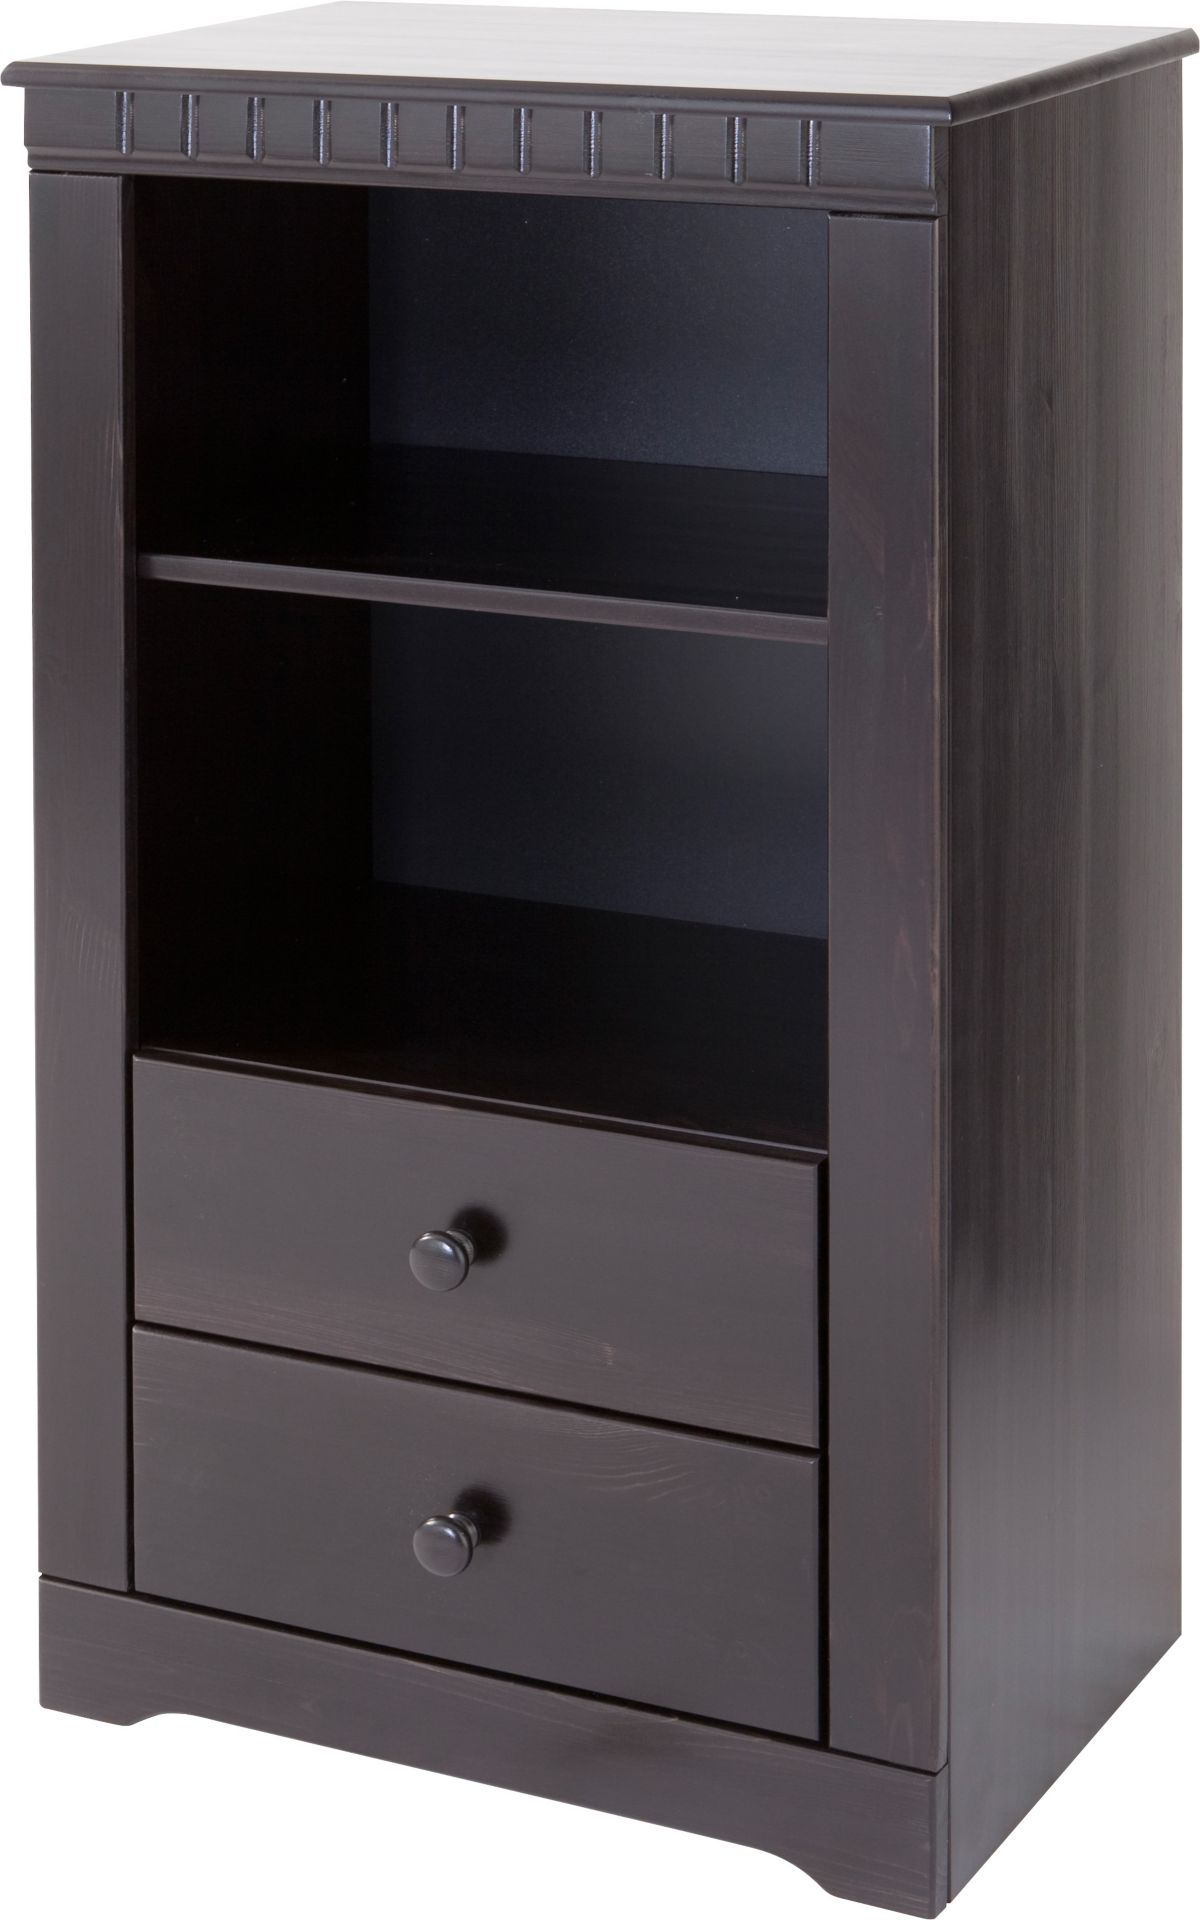 moebel moebel von a z regale z b standregal breite 80 cm b2b trade. Black Bedroom Furniture Sets. Home Design Ideas